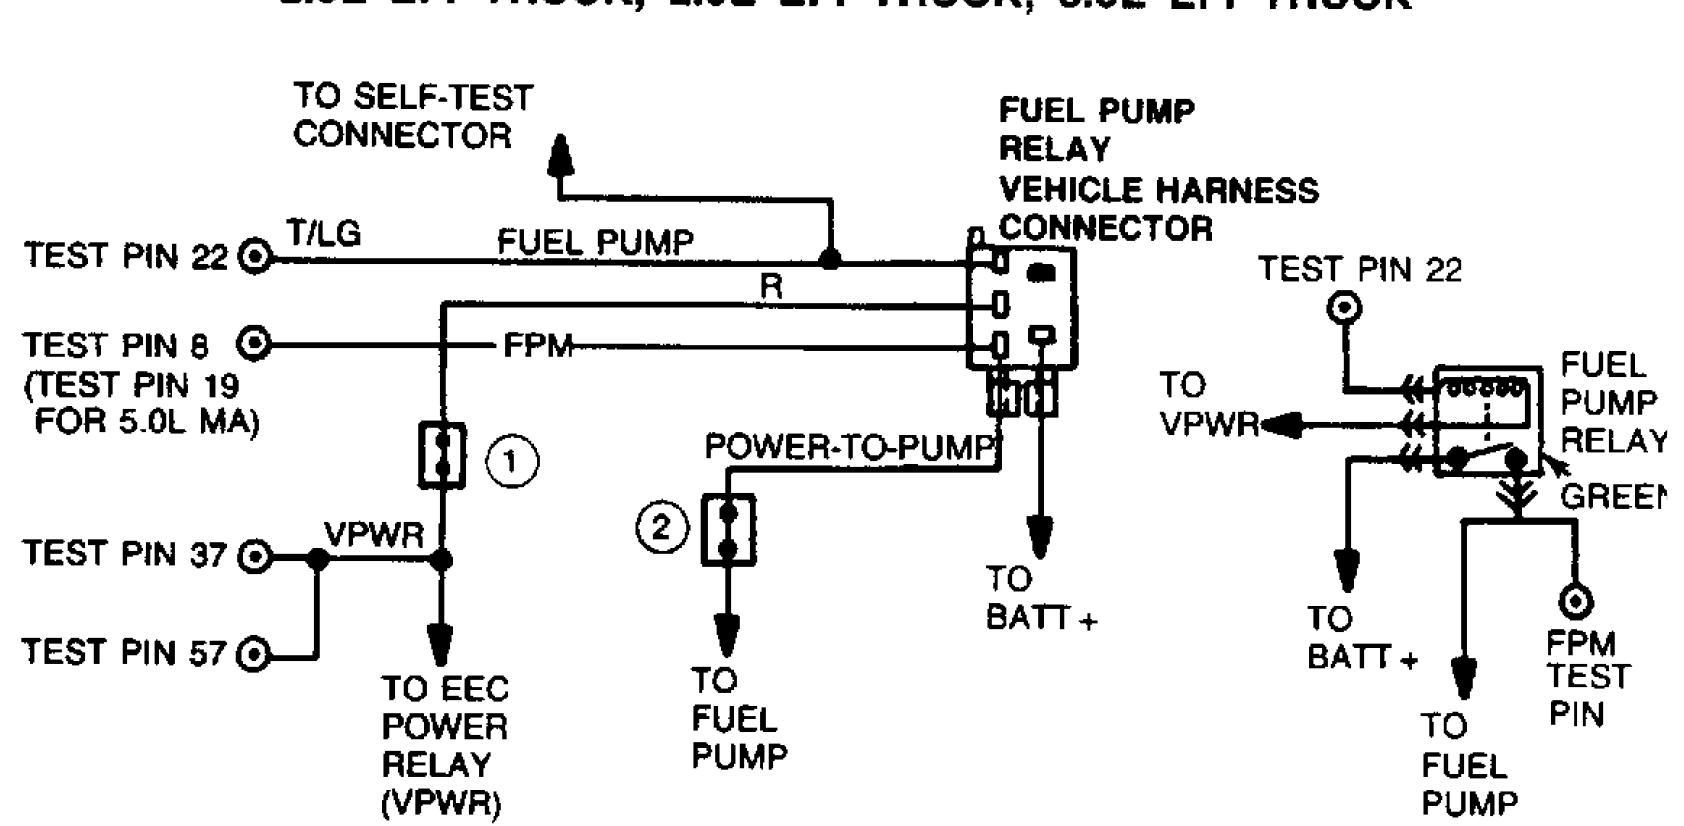 hight resolution of wiring diagram as well 1994 ford ranger eec test location besides eec power relay wiring diagram